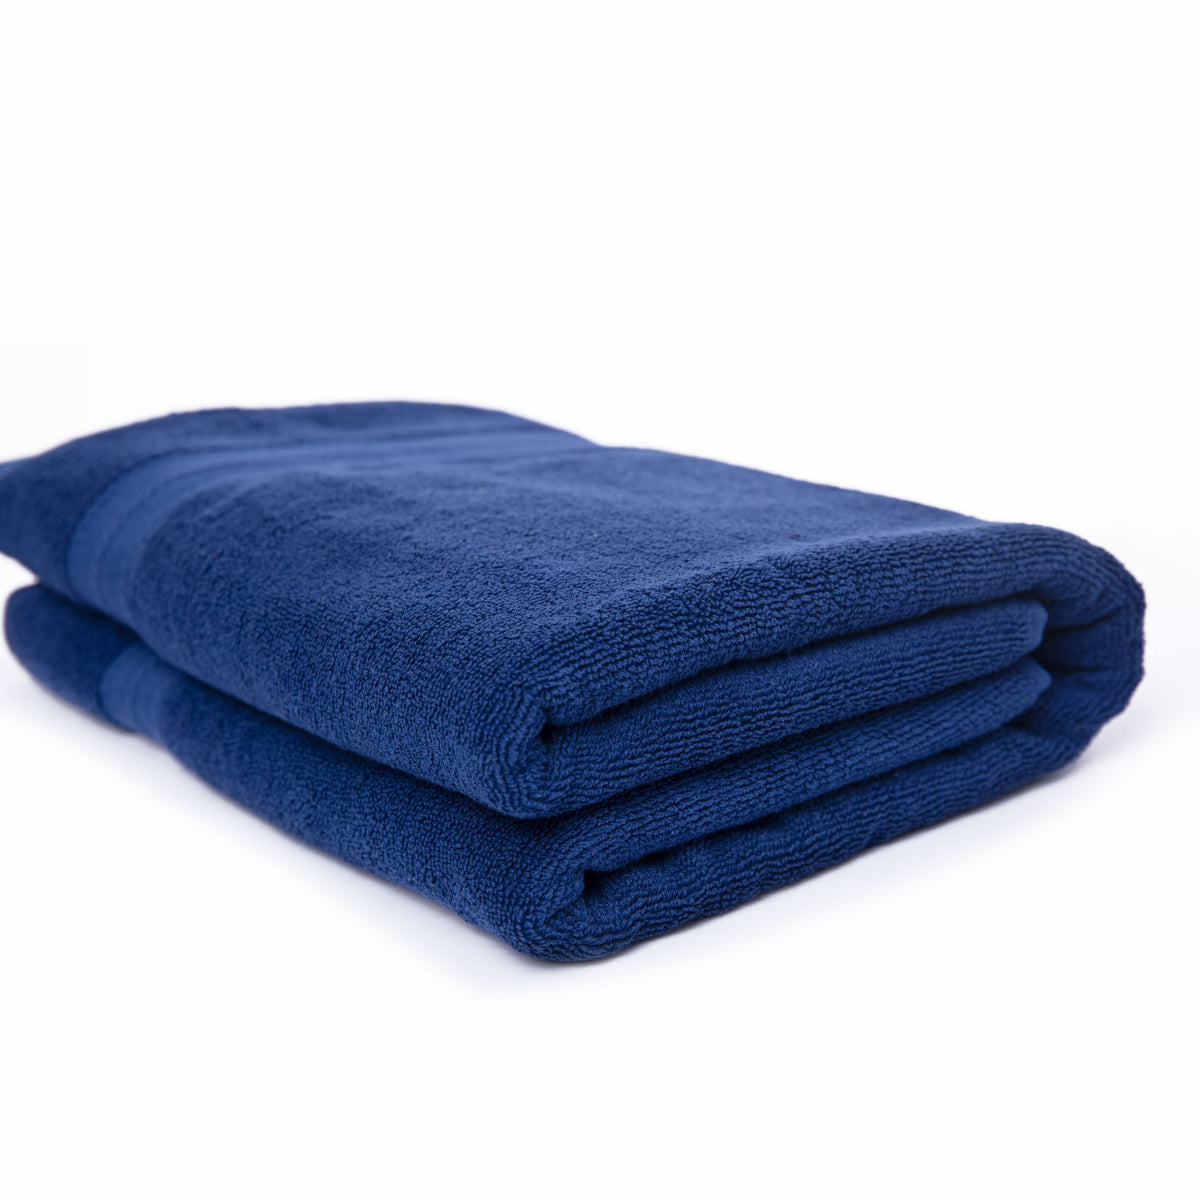 Blueberry - Towel